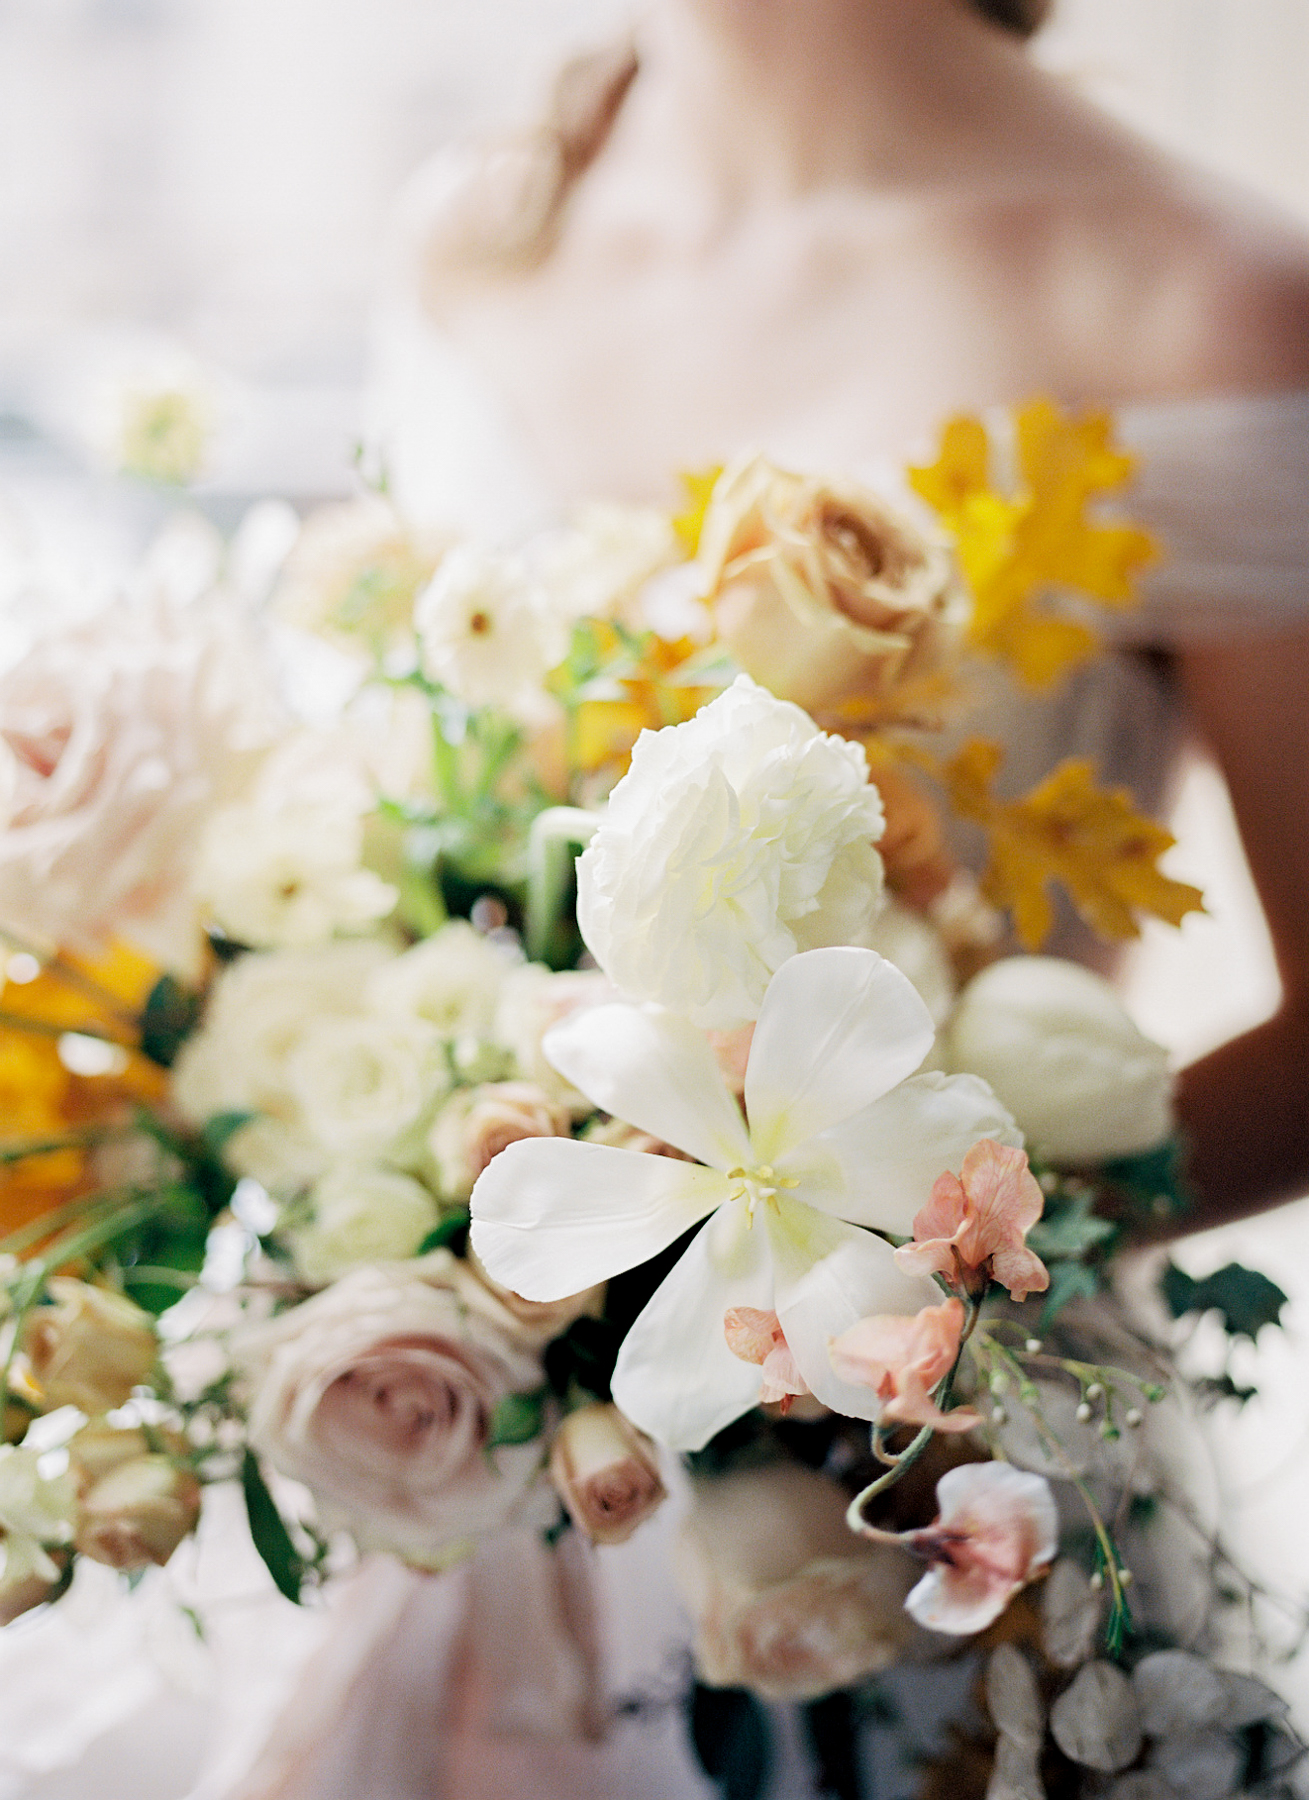 University_club_pittsburgh_wedding_photographer_anna_laero_photography_bumbleburgh_events_wood_and_grace_design_2.jpg